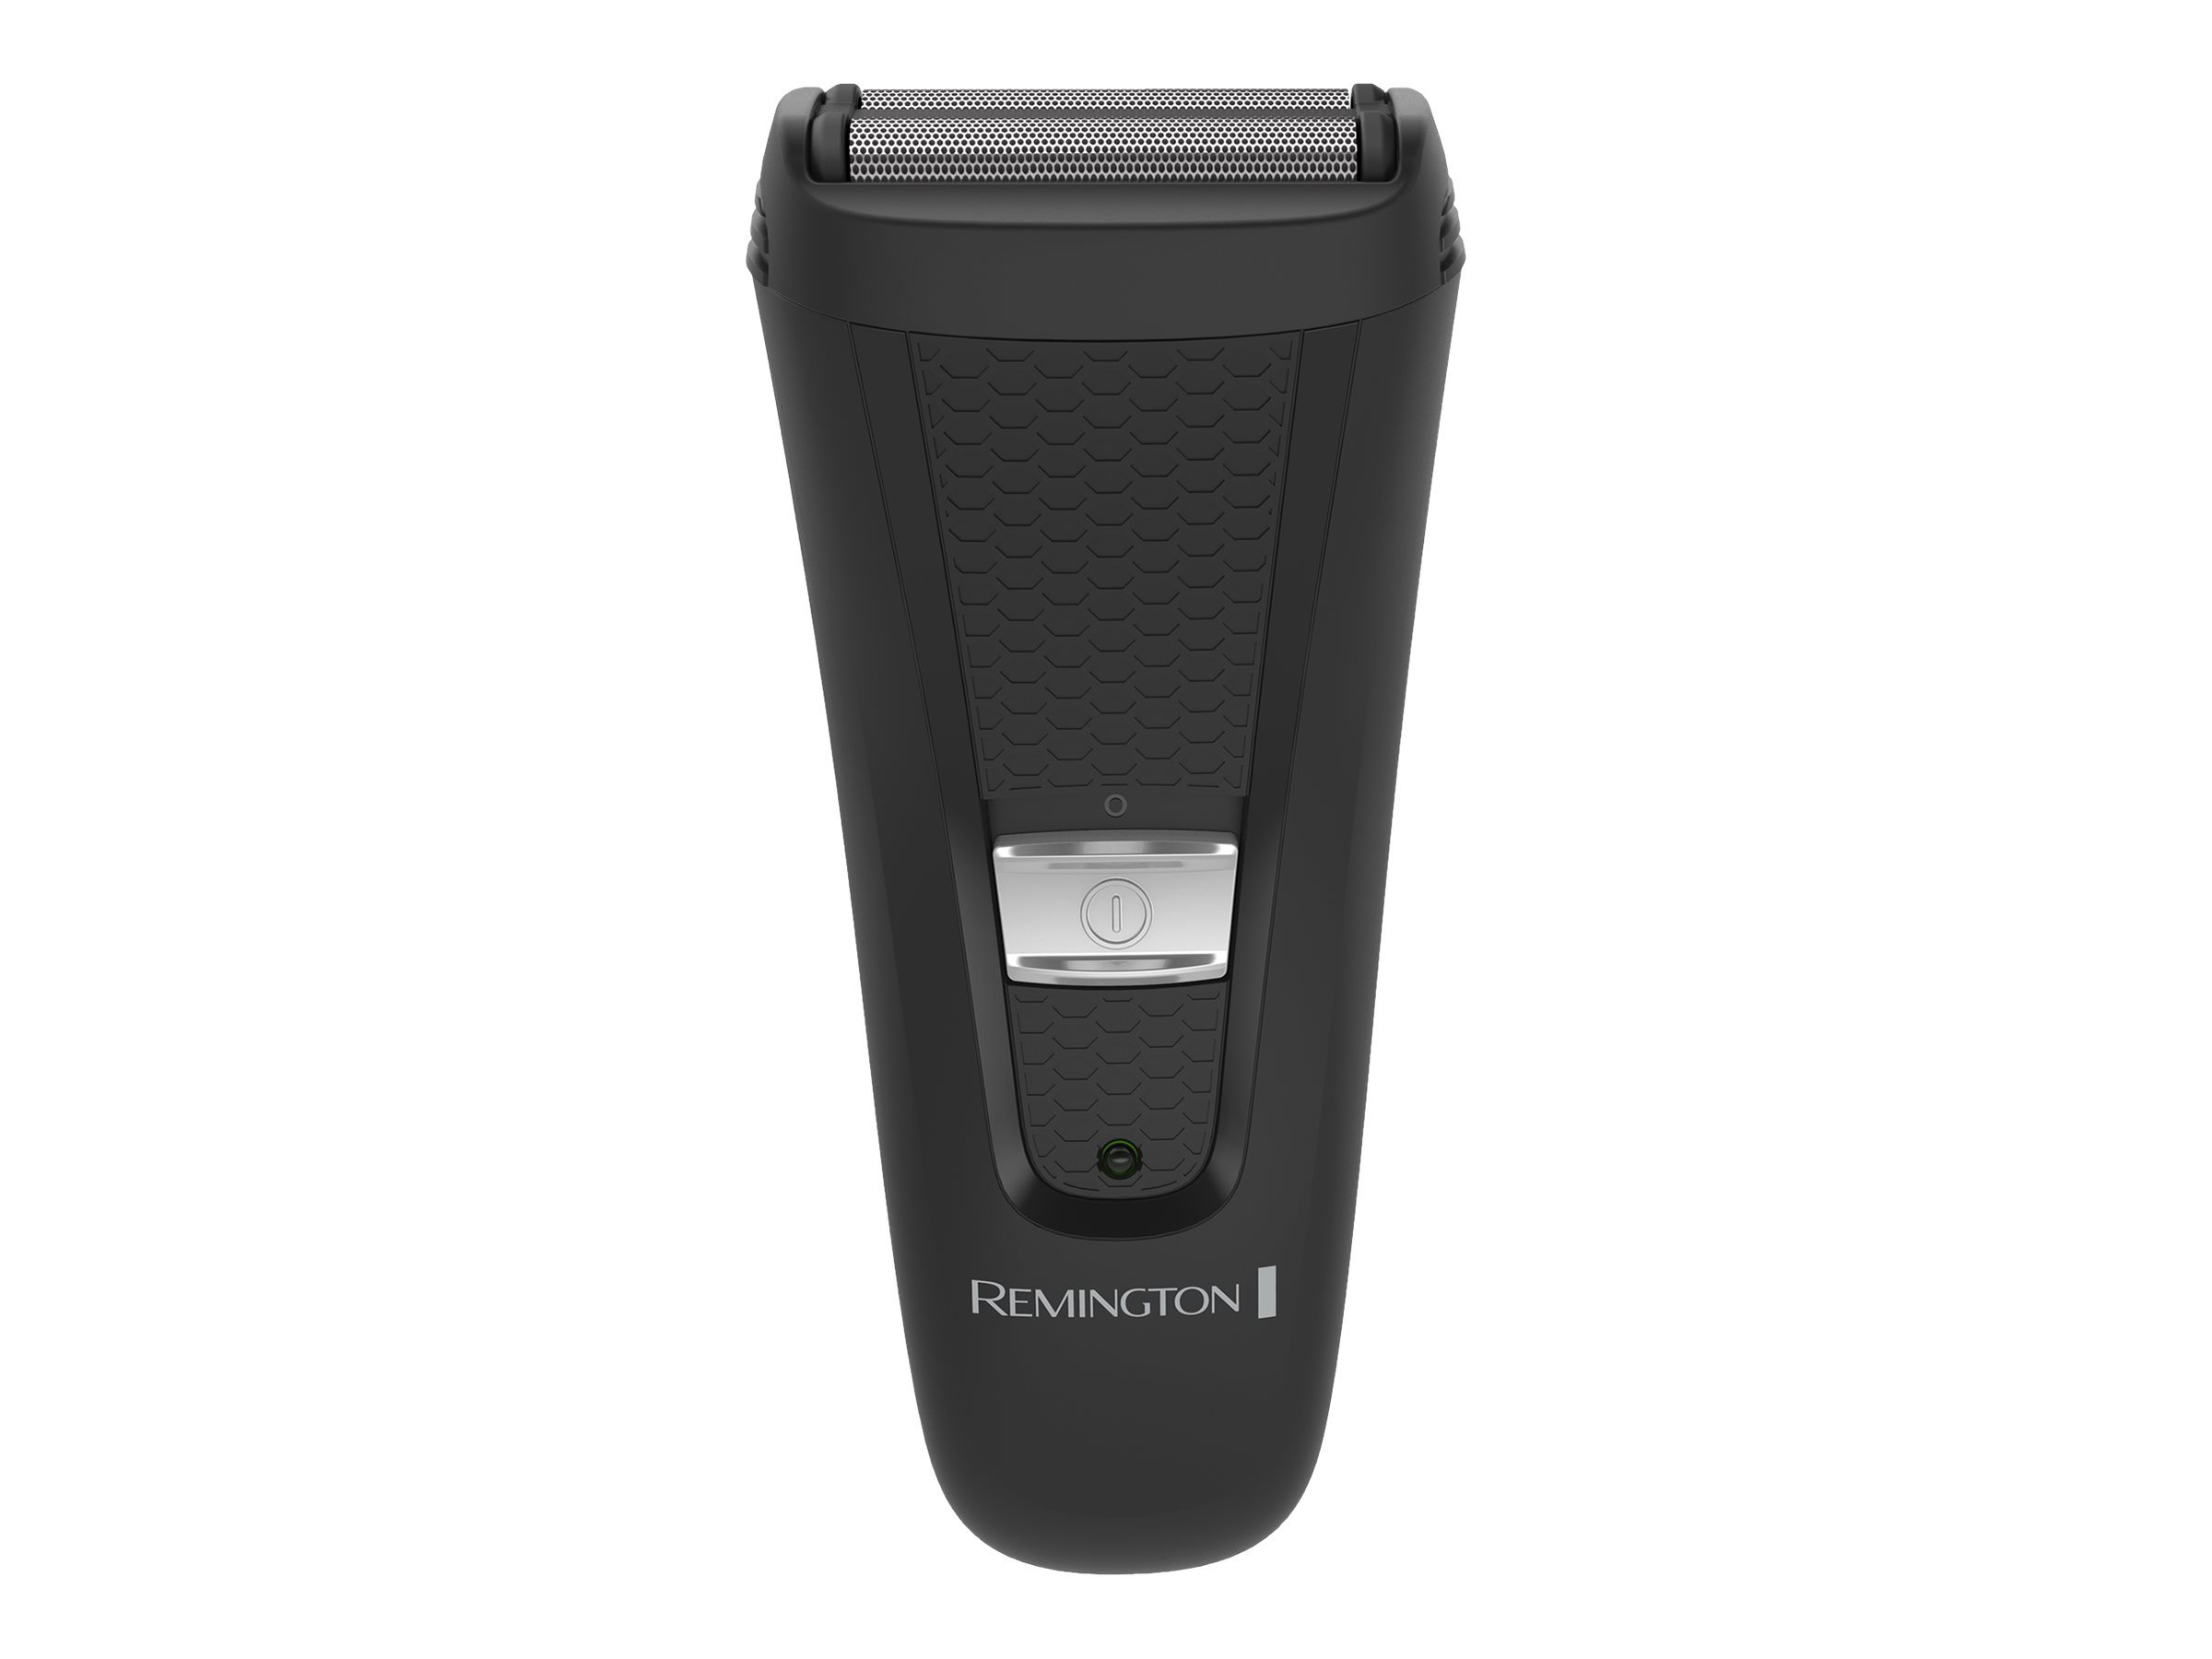 Image for Remington Comfort Series - Shaver from Circuit City